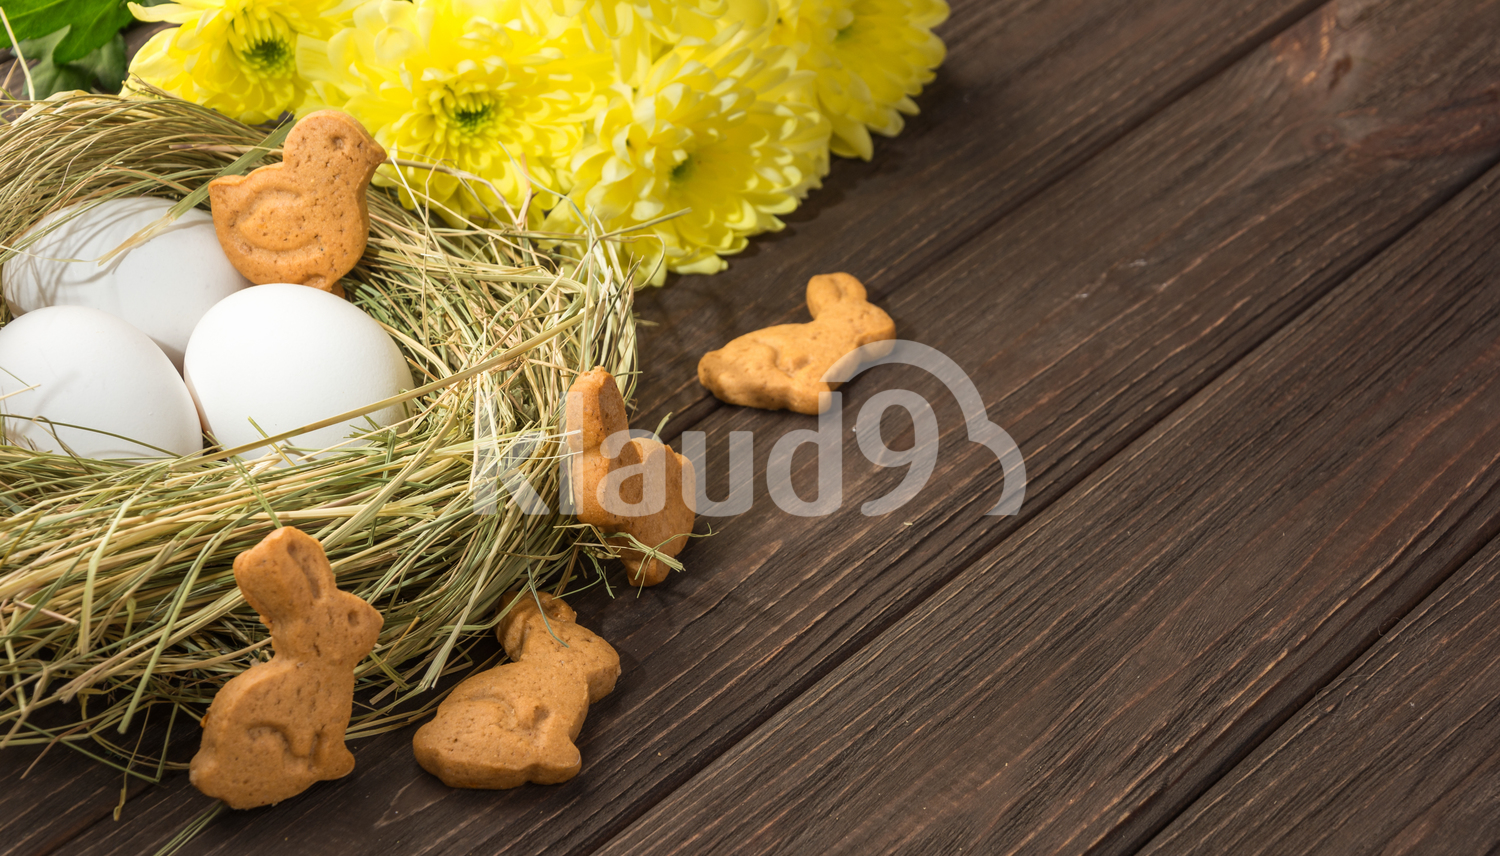 Easter eggs in a straw nest, Easter bunny cookies and yellow flowers